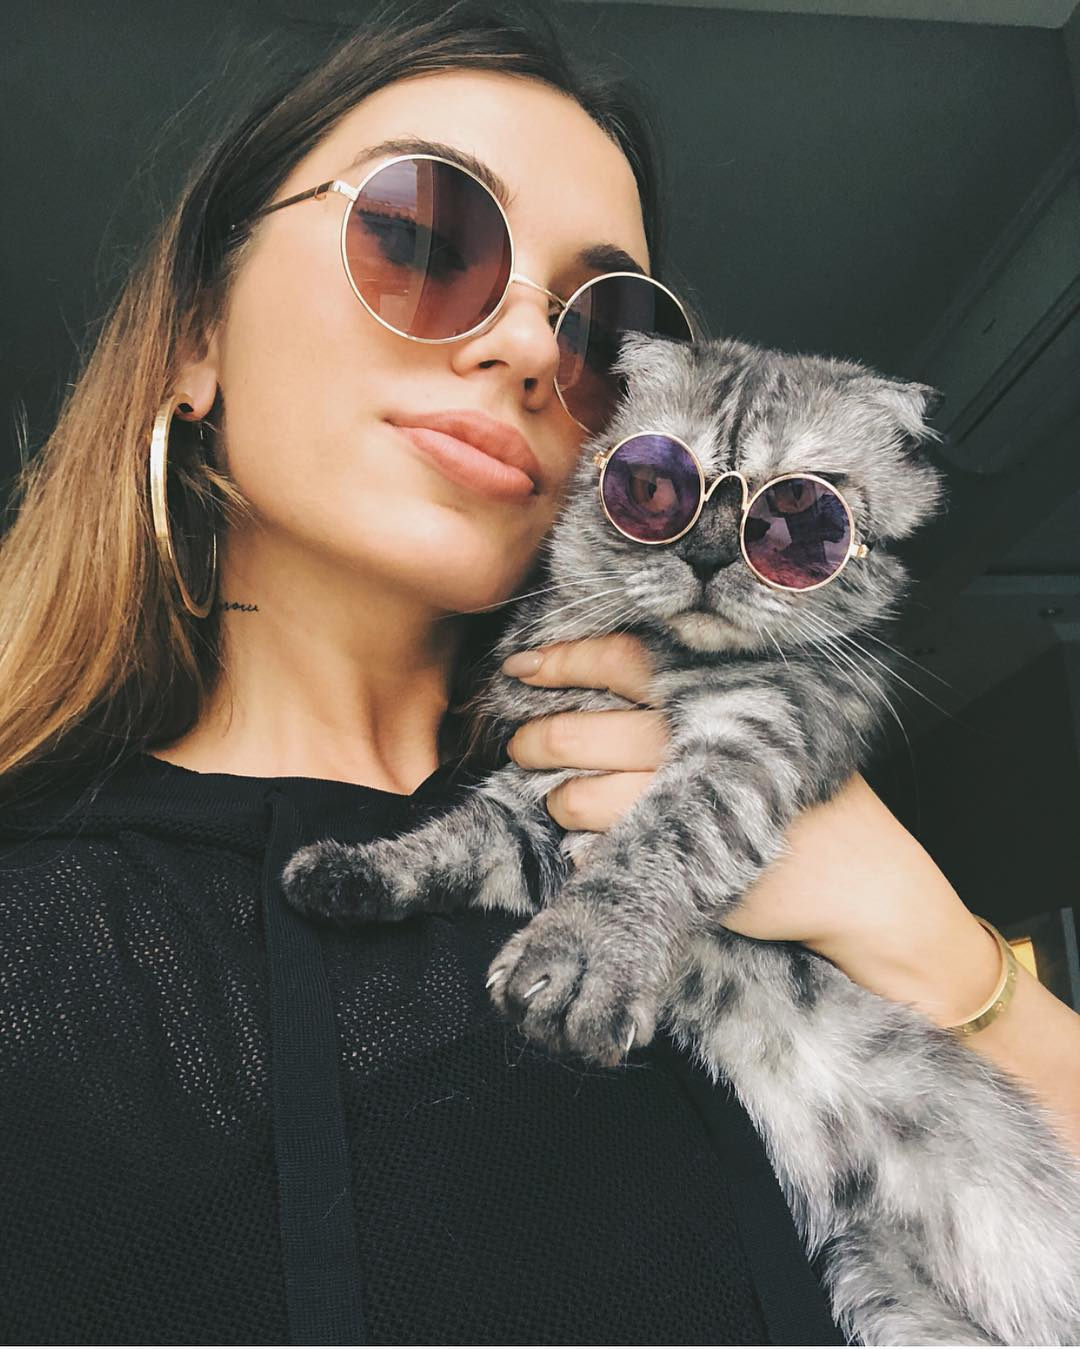 Nineties Style Rounded Sunglasses For Young Women 2019